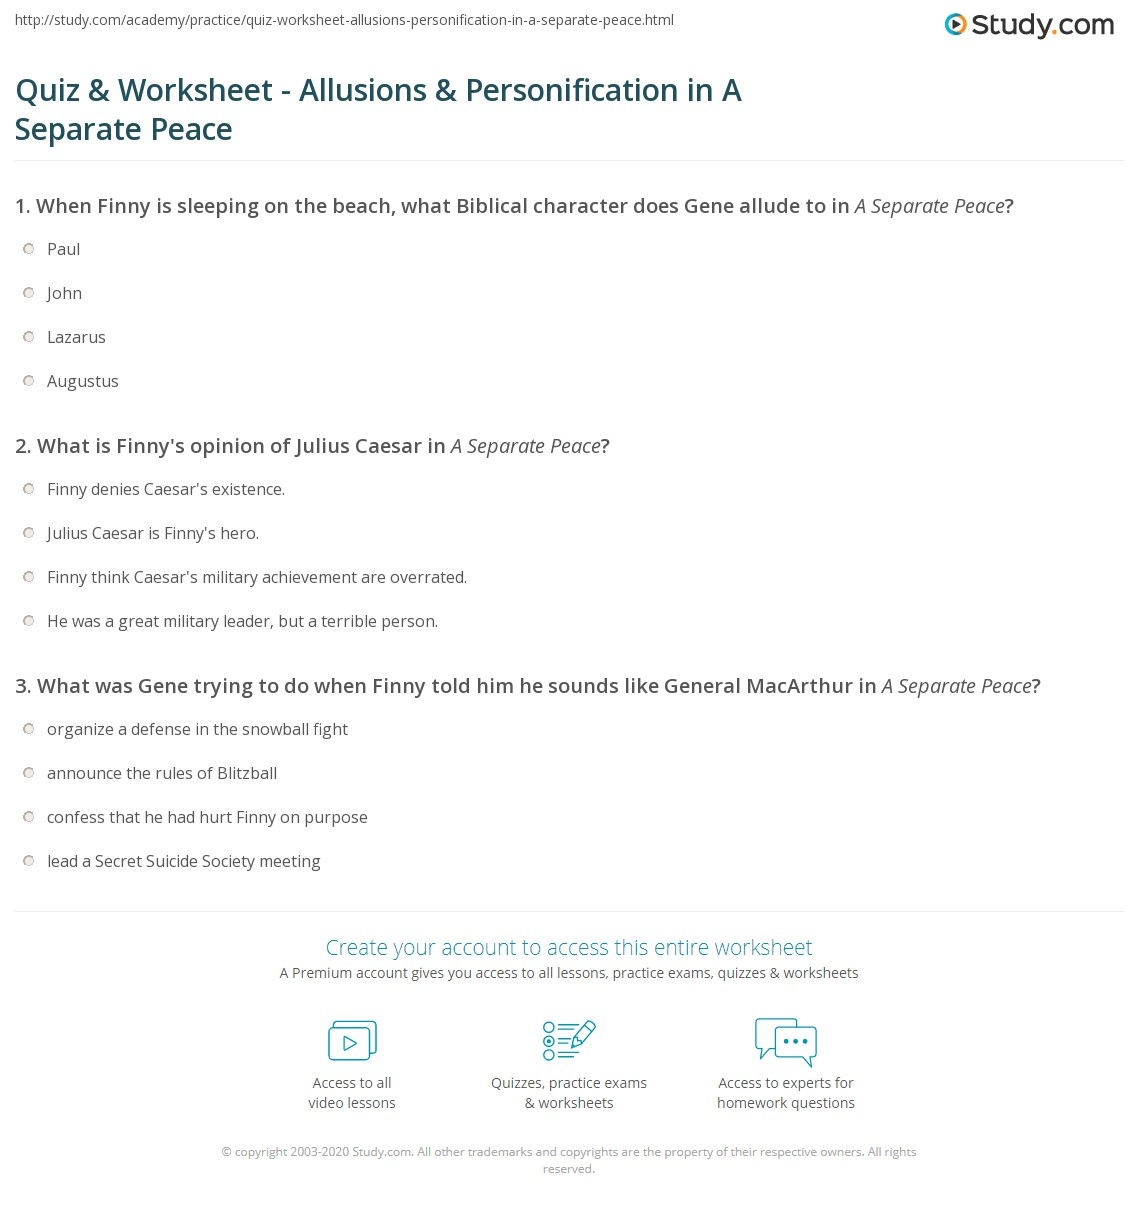 Quiz Worksheet Allusions Personification In A Separate Peace